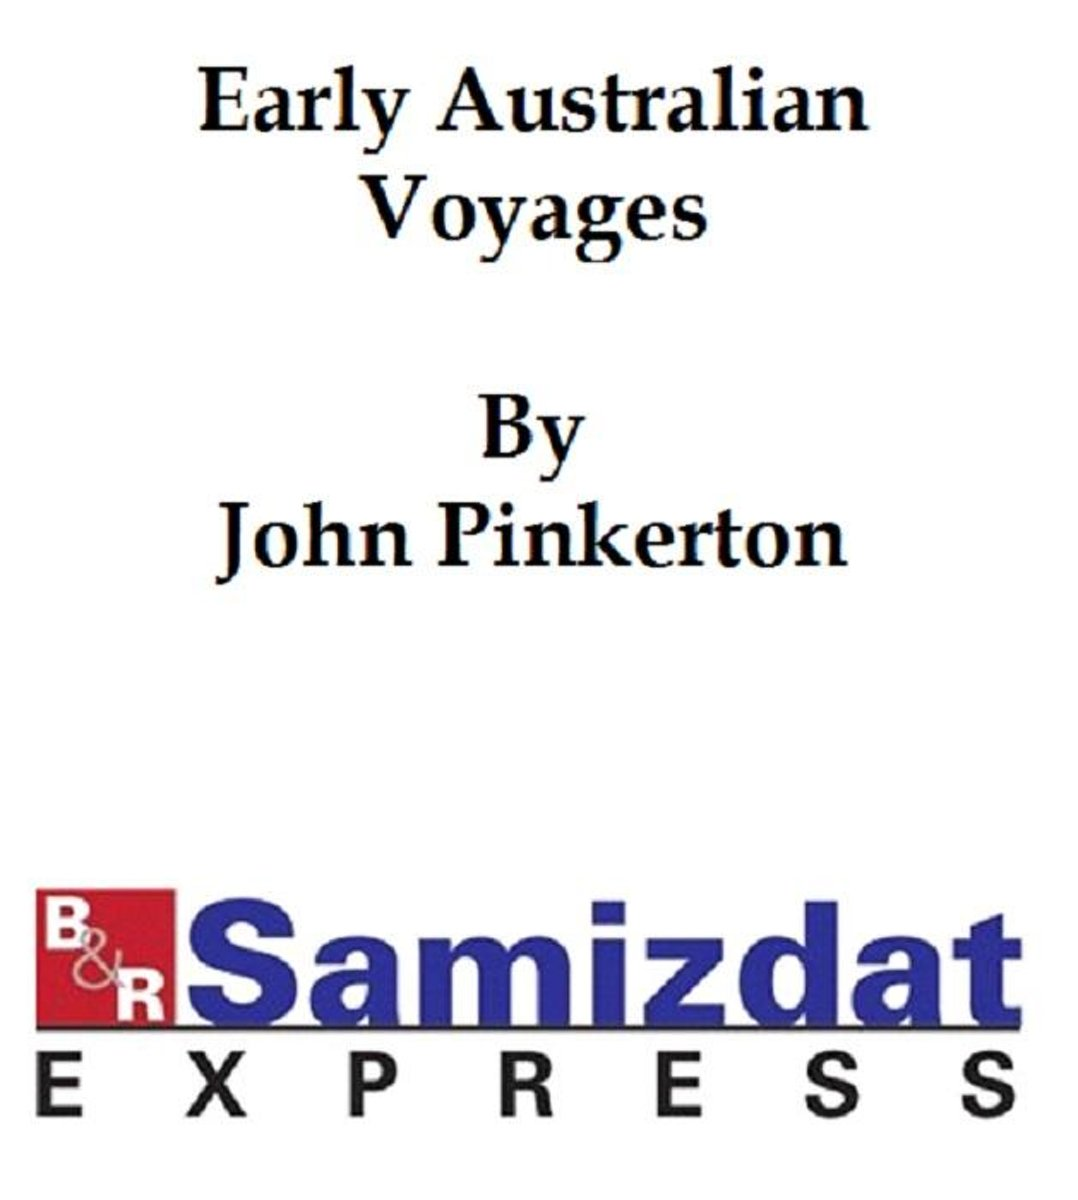 Early Australian Voyages